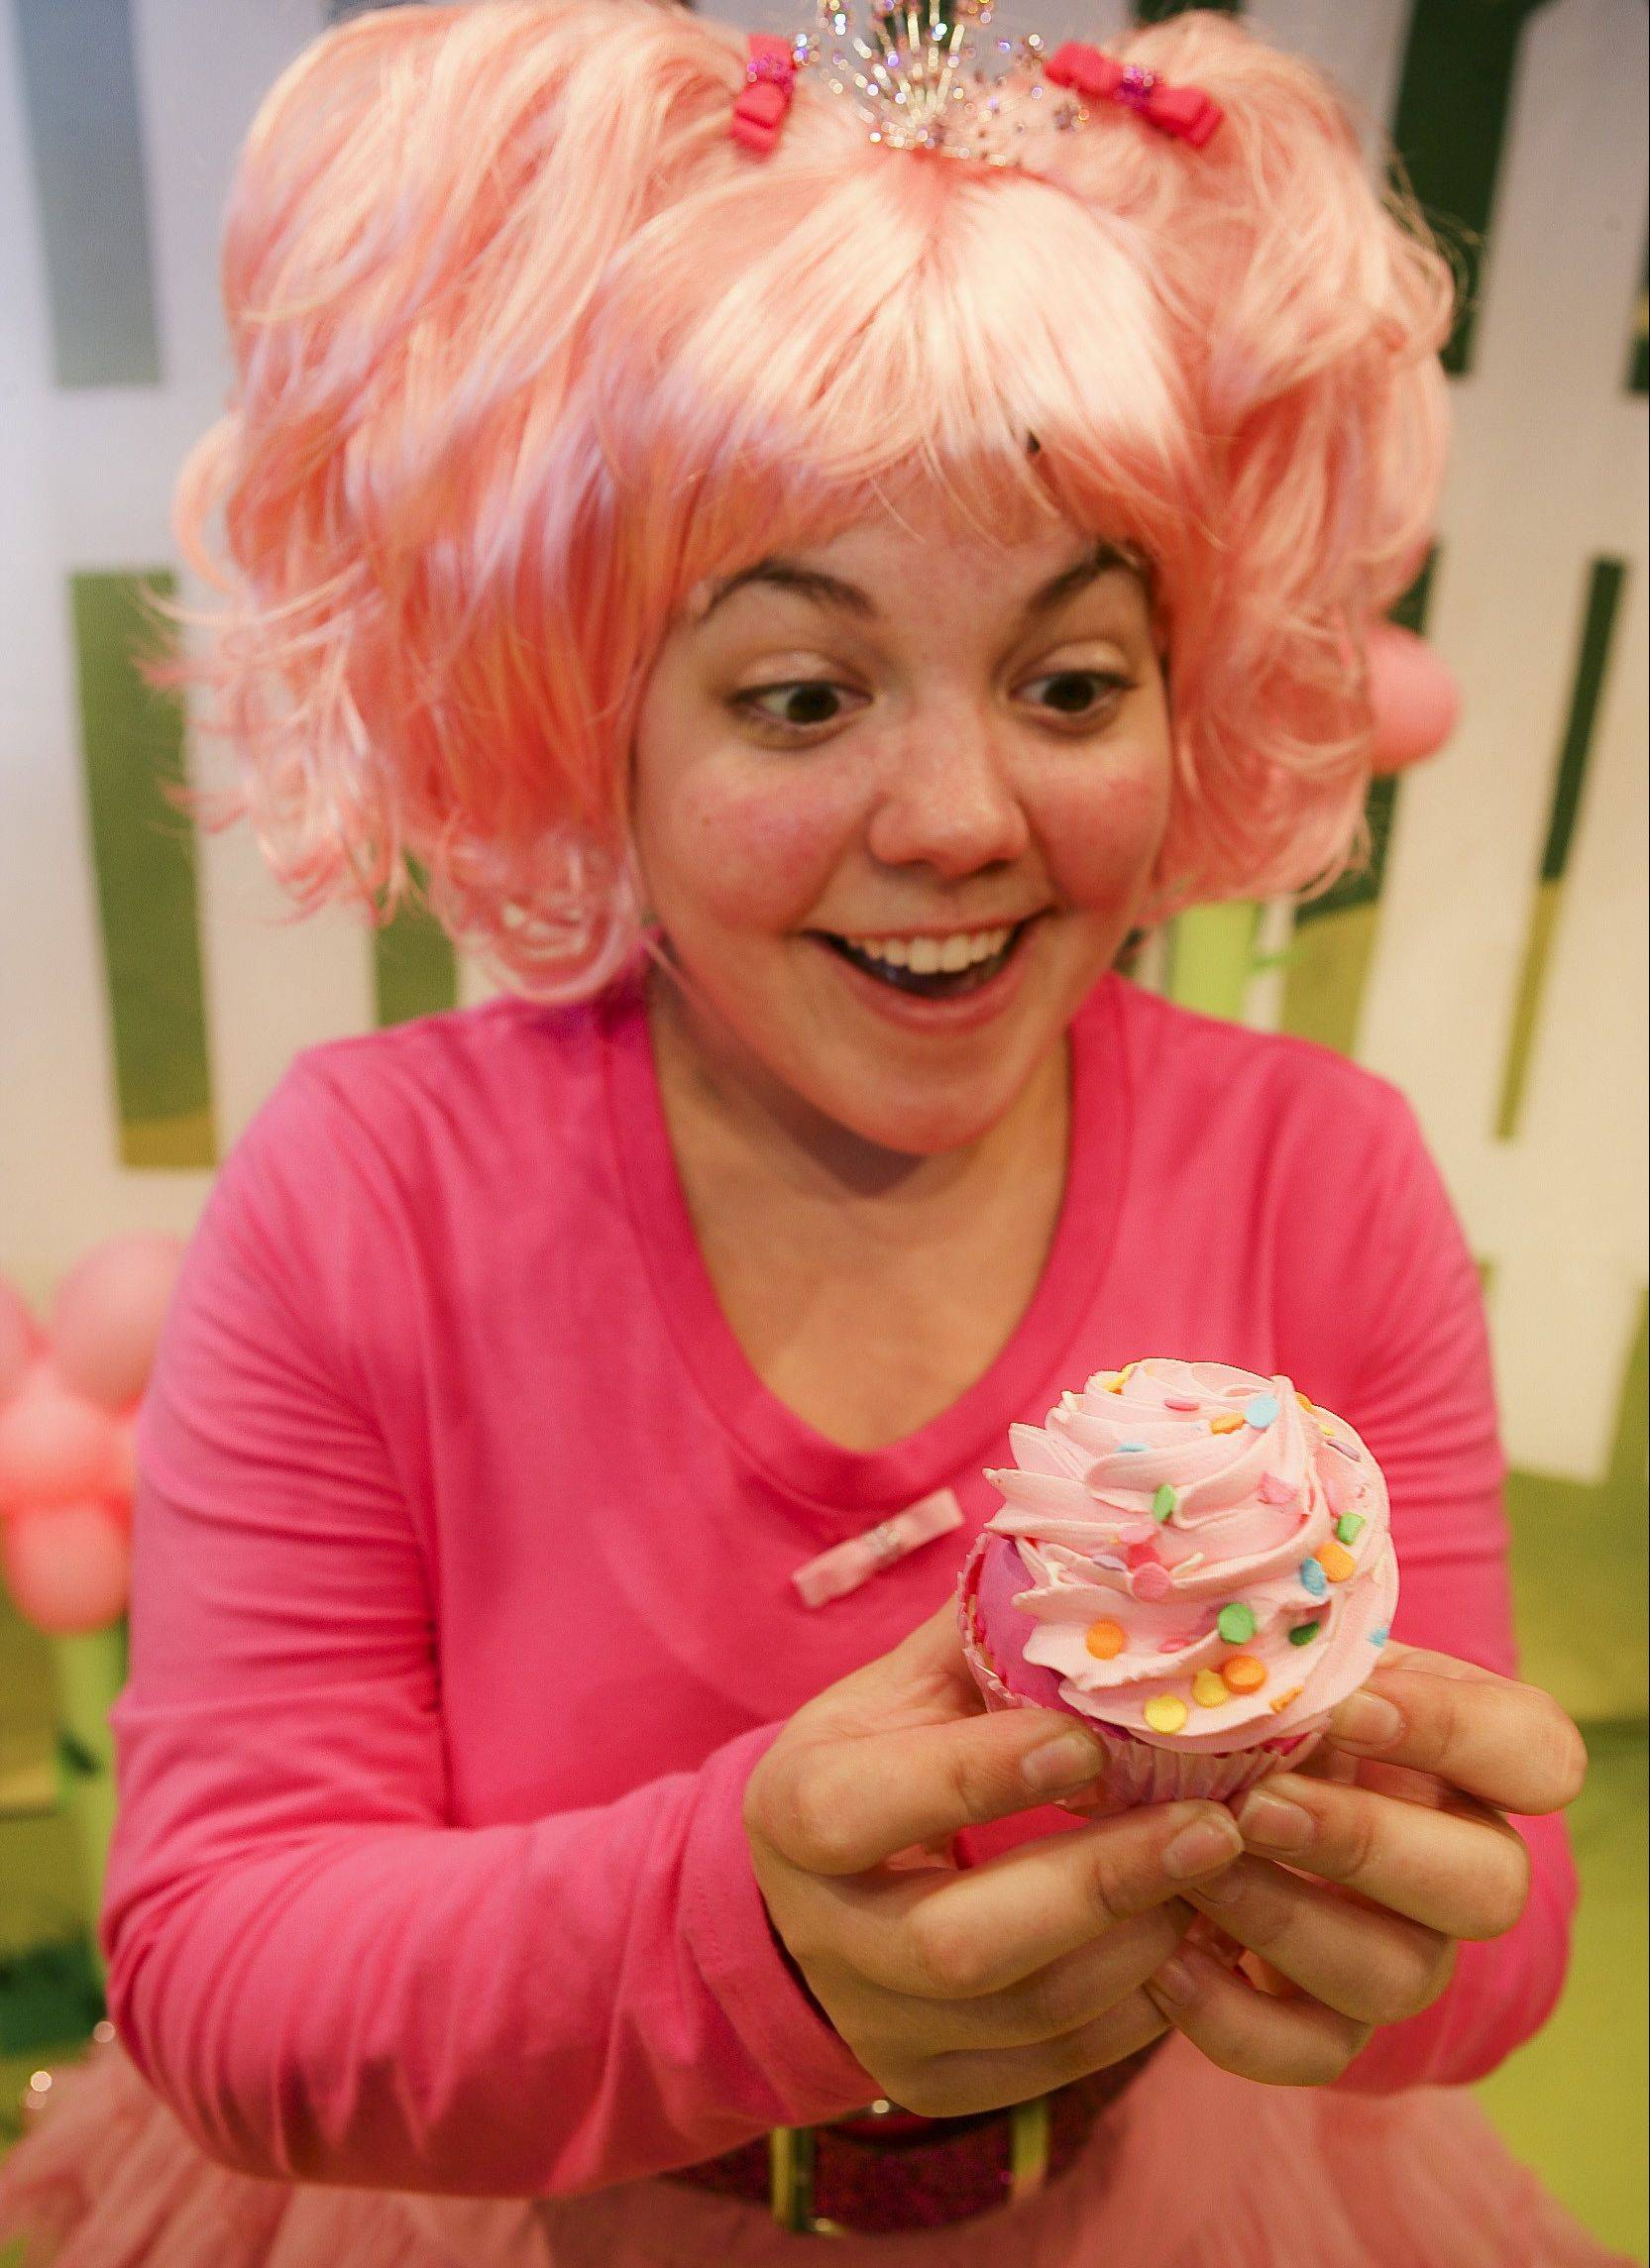 �Pinkalicious,� a musical about a young girl who adores the color pink, will run through Sept. 3 at the Broadway Playhouse at Water Tower Place.